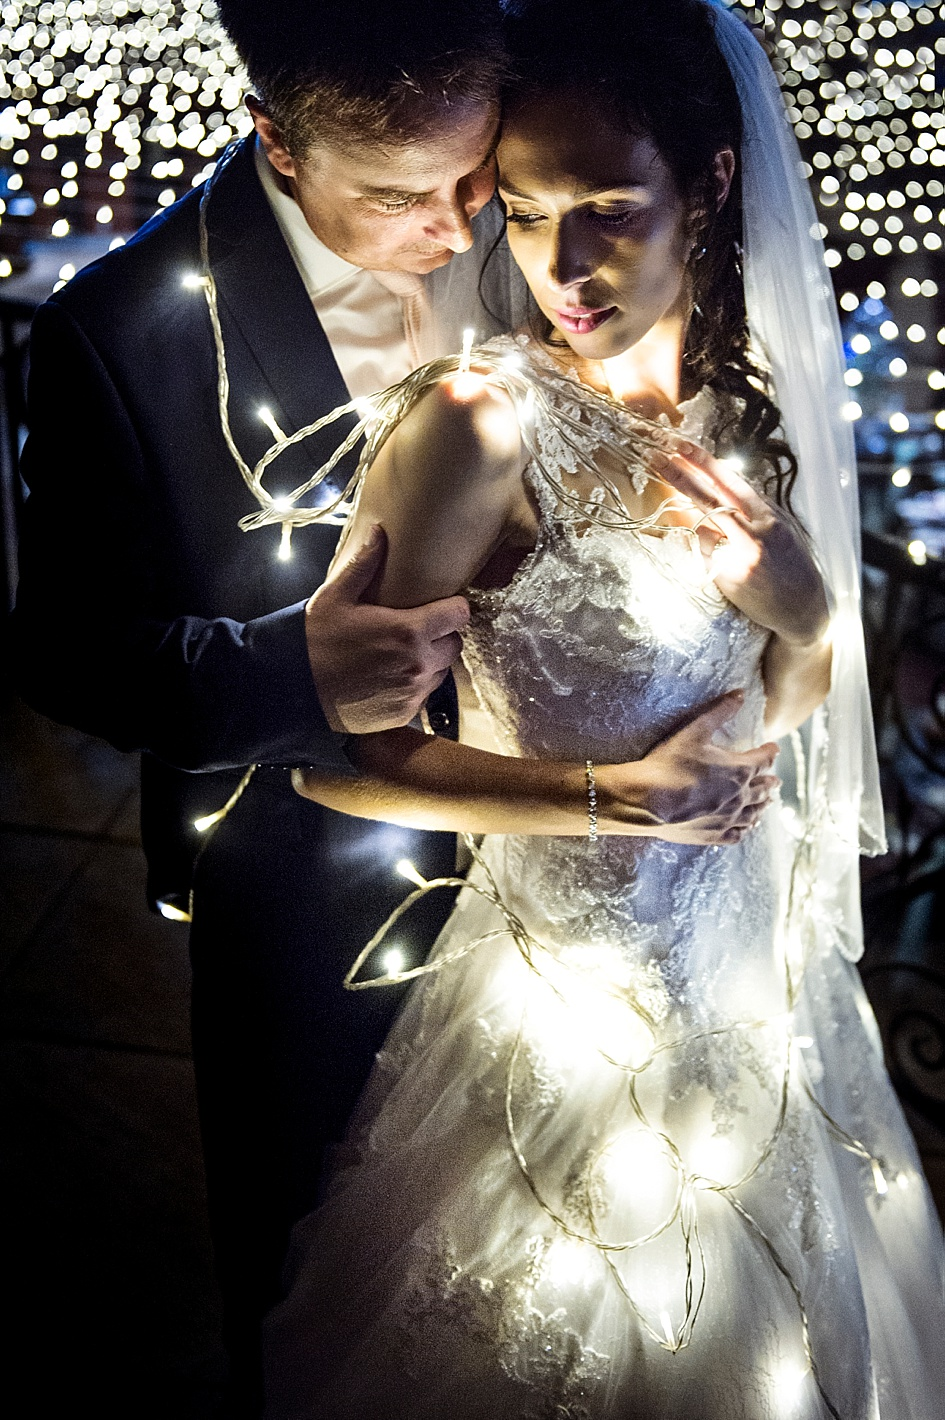 fairylights-wedding-shoot-ideas.jpg